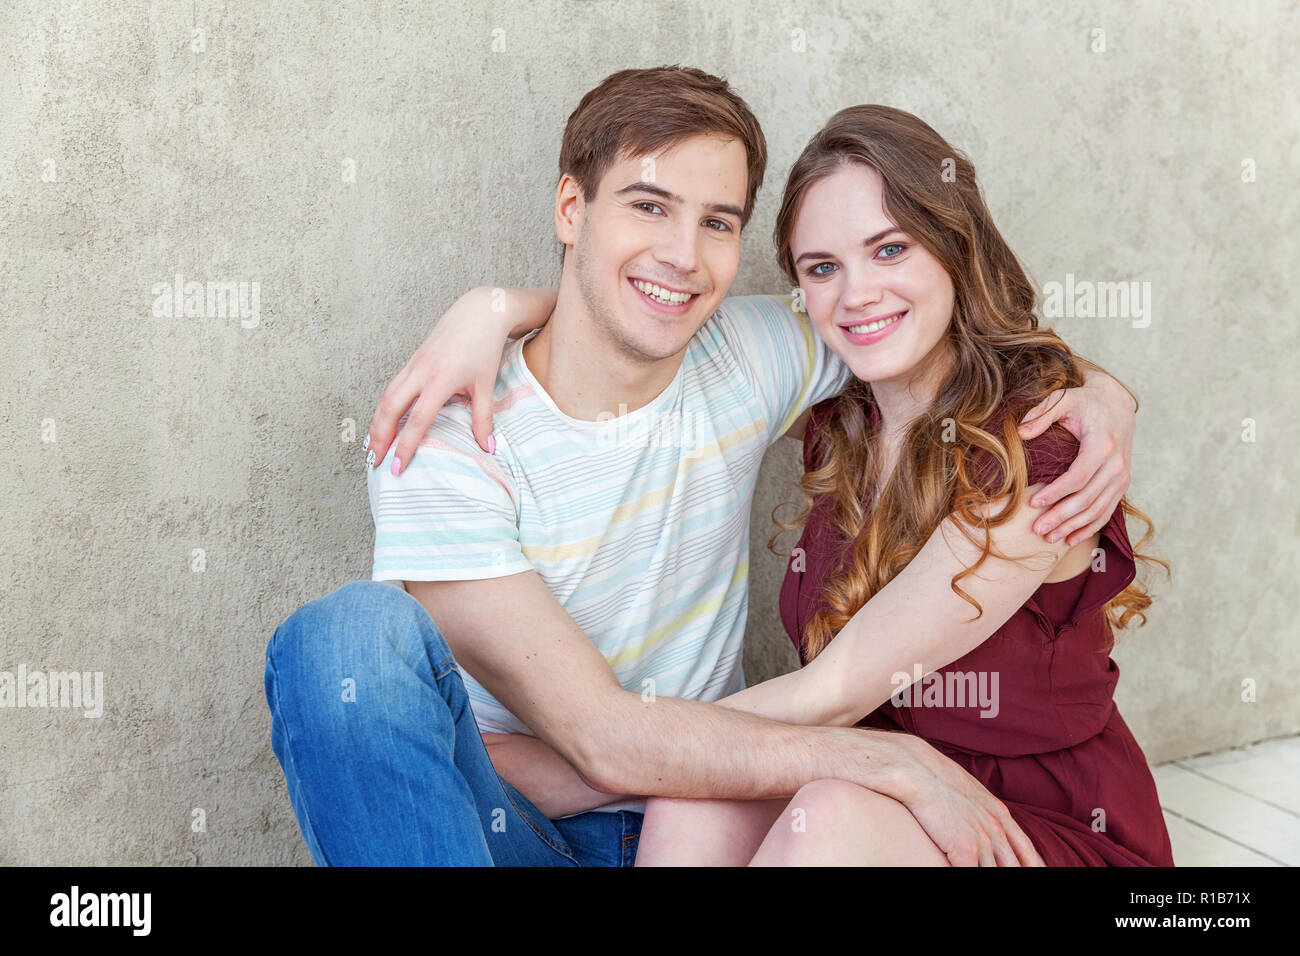 Couple in love having nice time together. Young happy woman hugging boyfriend, white background. Students, bride, groom, engagement, relationship, asp - Stock Image